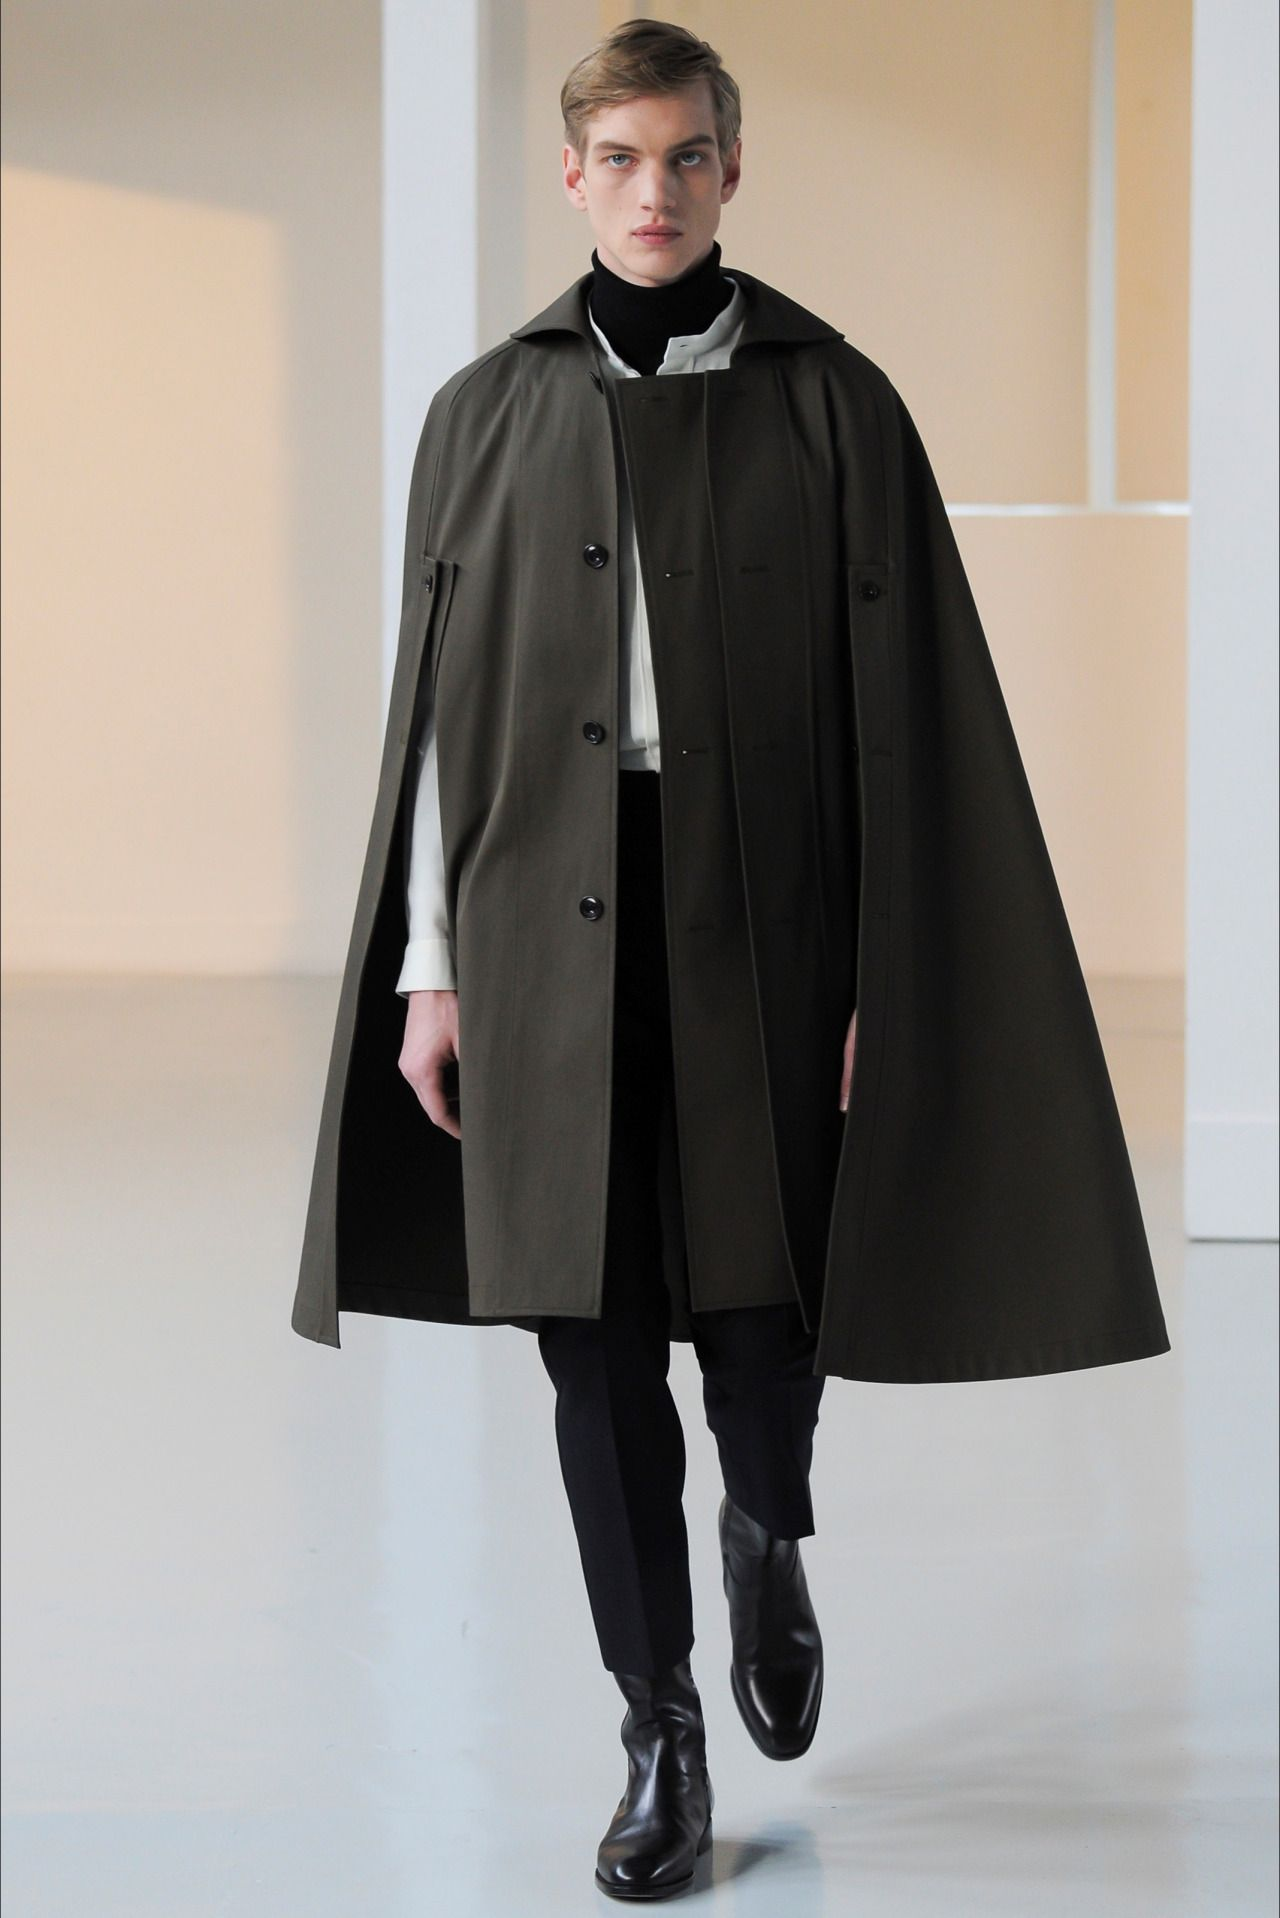 paul boche at christophe lemaire fall winter 2015 2016 menswear pinterest manteau chic. Black Bedroom Furniture Sets. Home Design Ideas